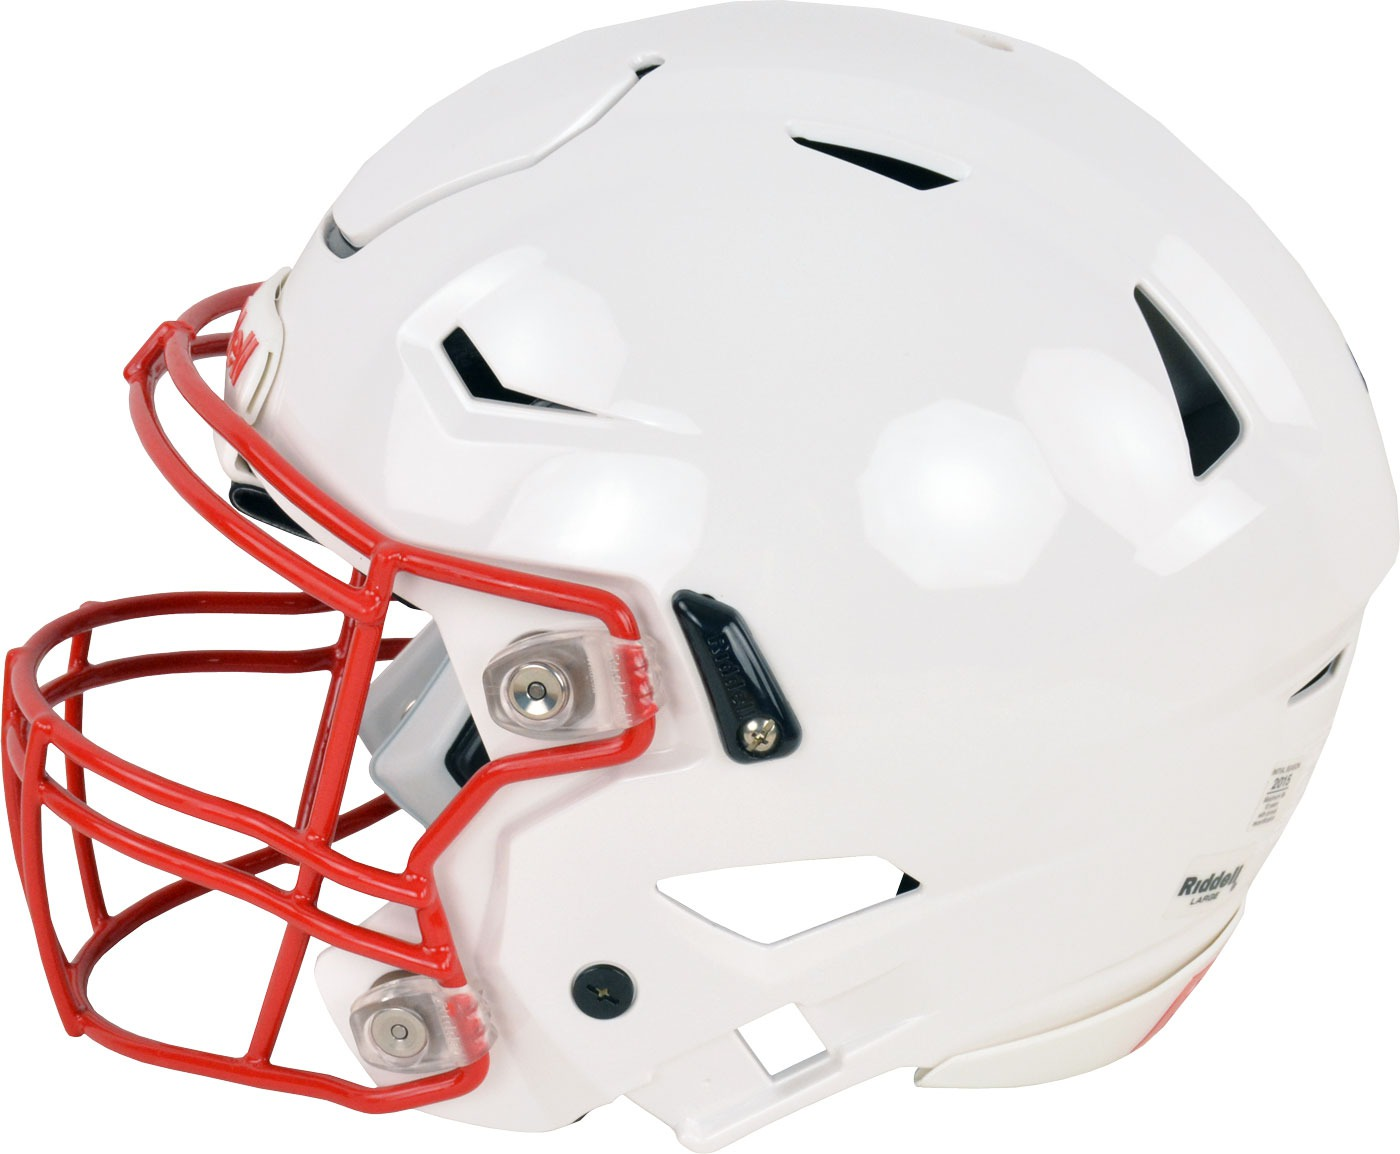 1400x1154 Riddell Speedflex Sf 2bd Football Facemask